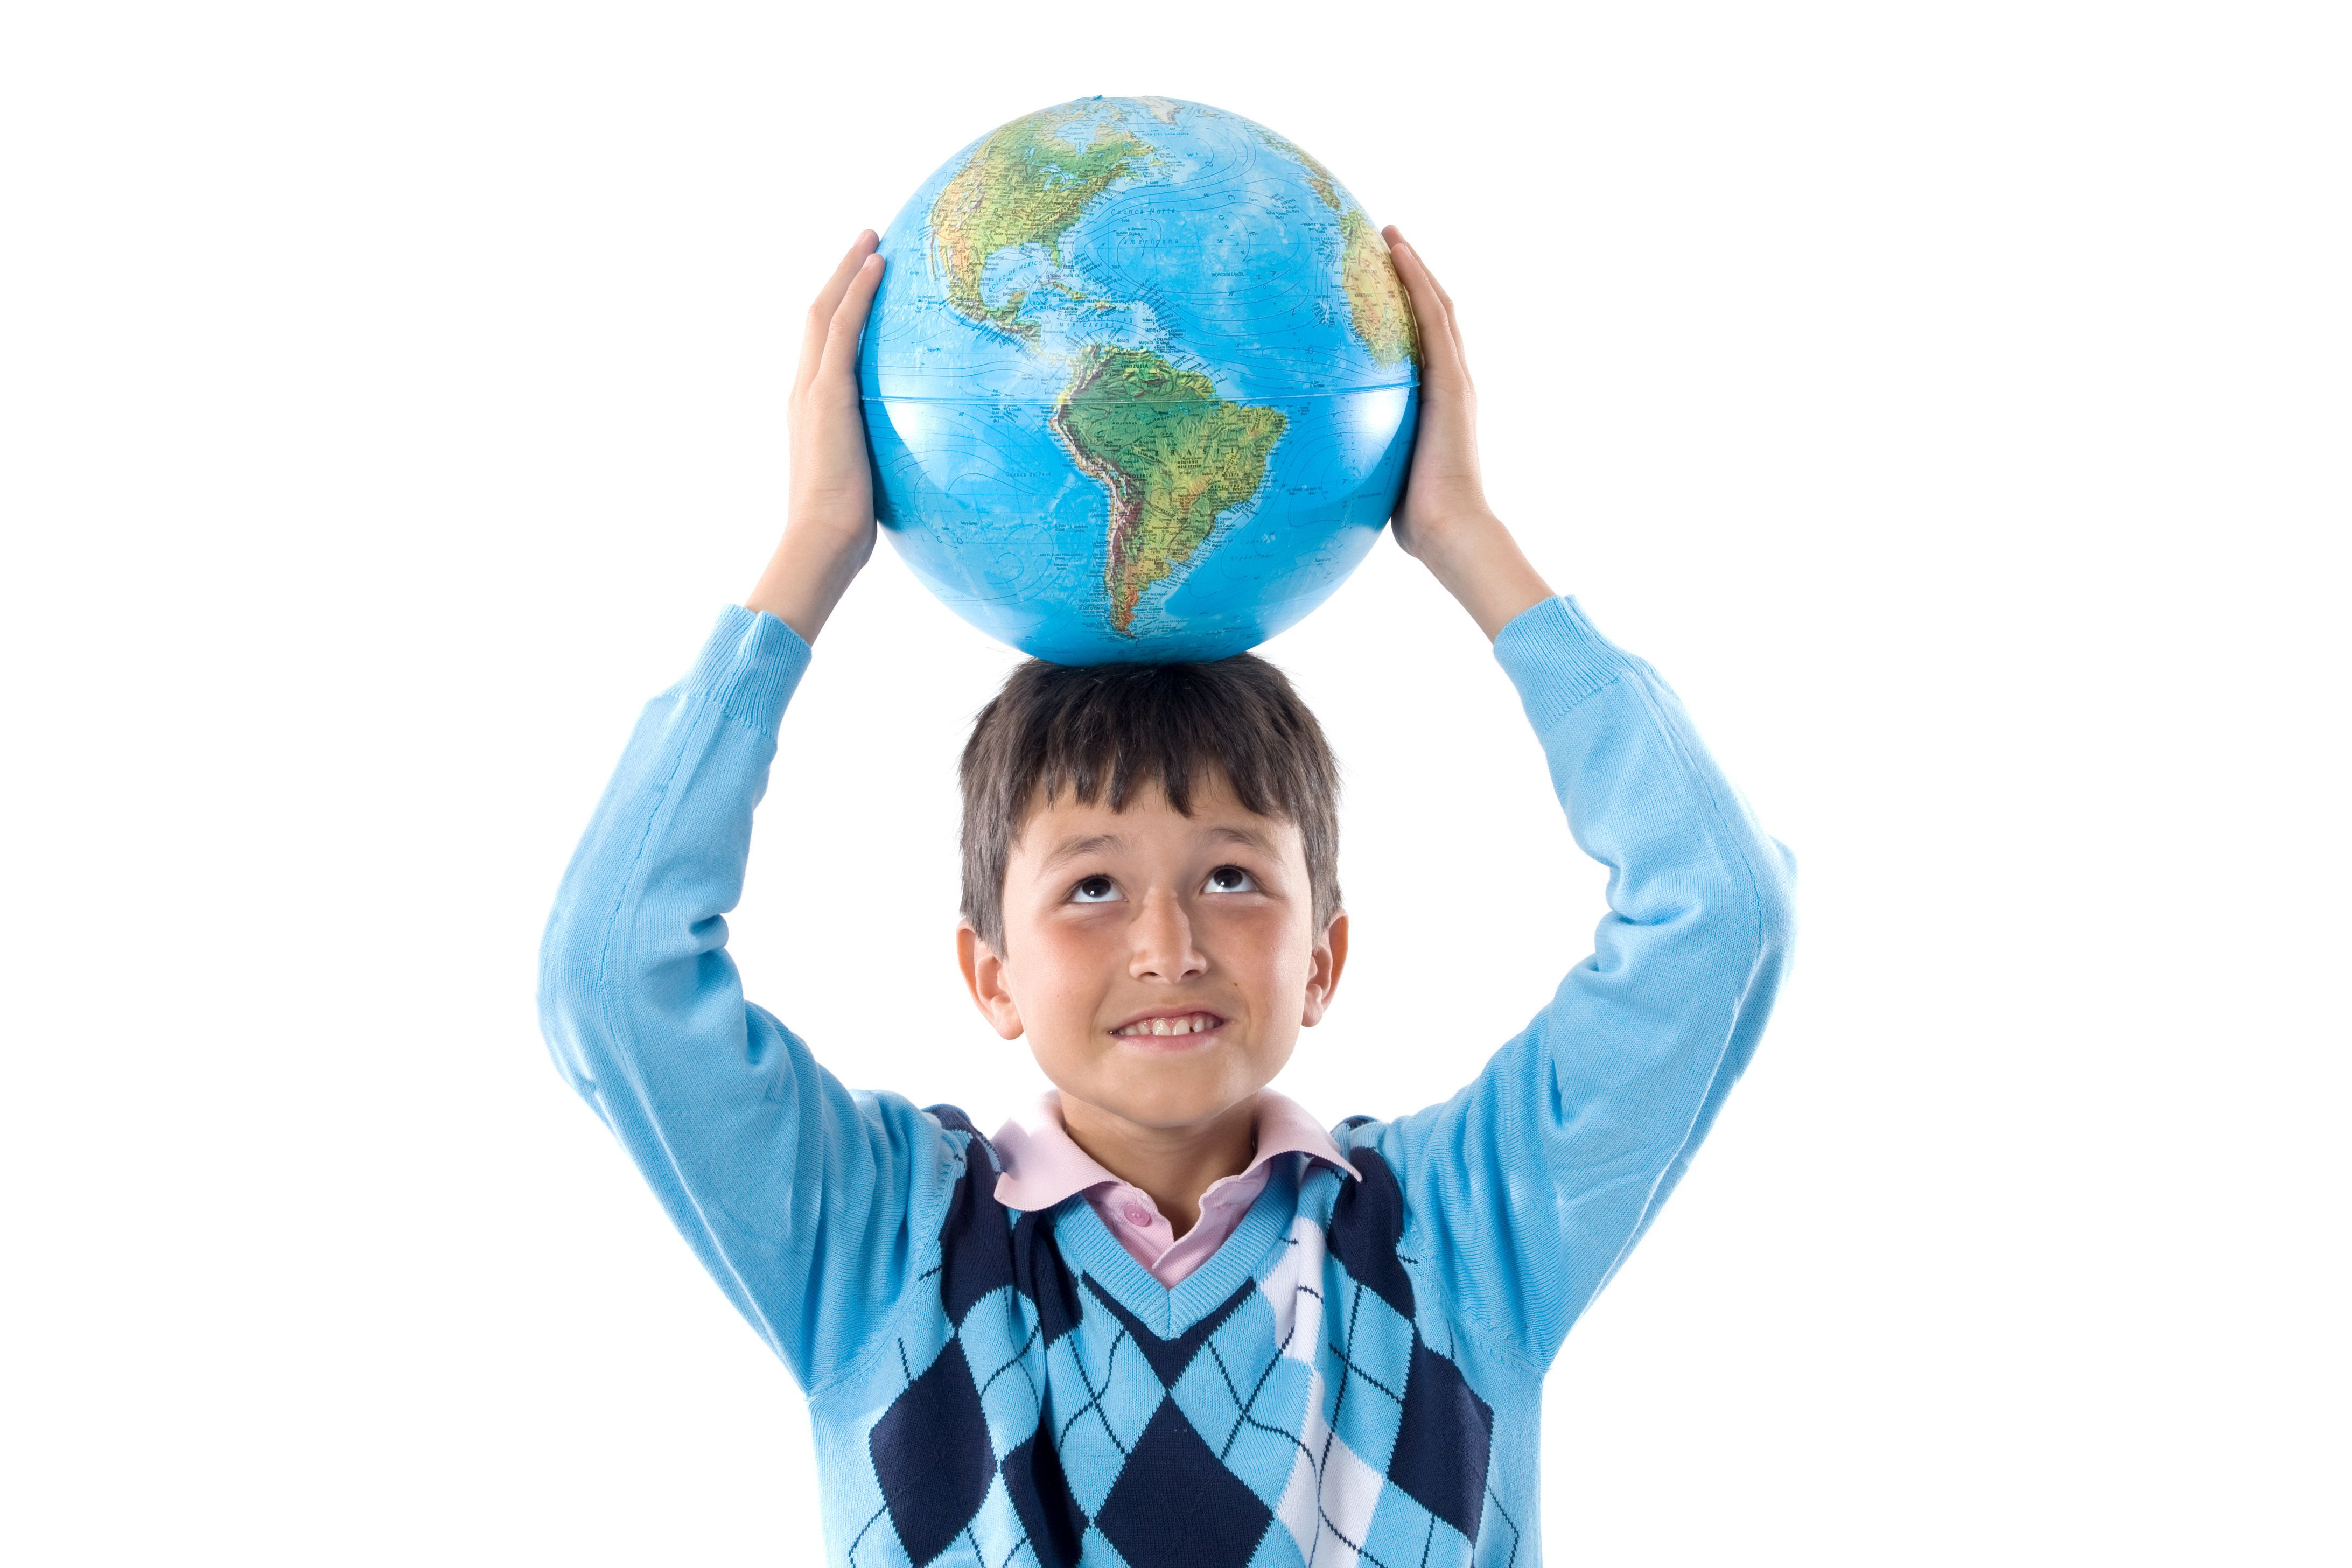 Boy with a globe of the world on the head isolated over white